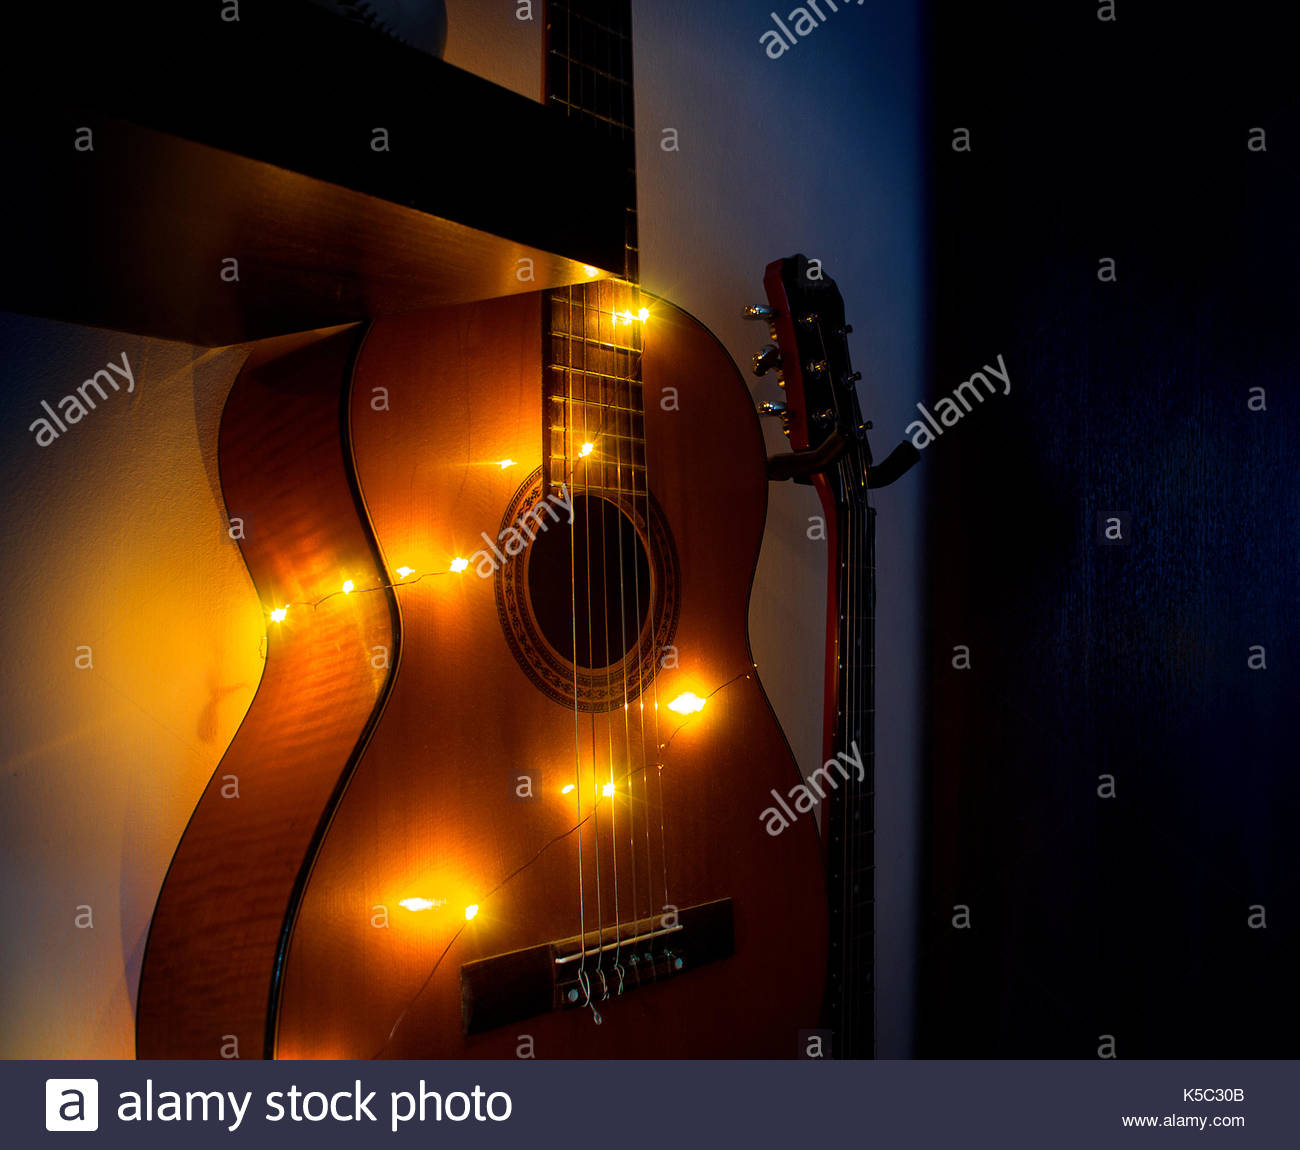 Accrocher Sa Guitare Au Mur Beau Photos Guitar Rack S & Guitar Rack Alamy